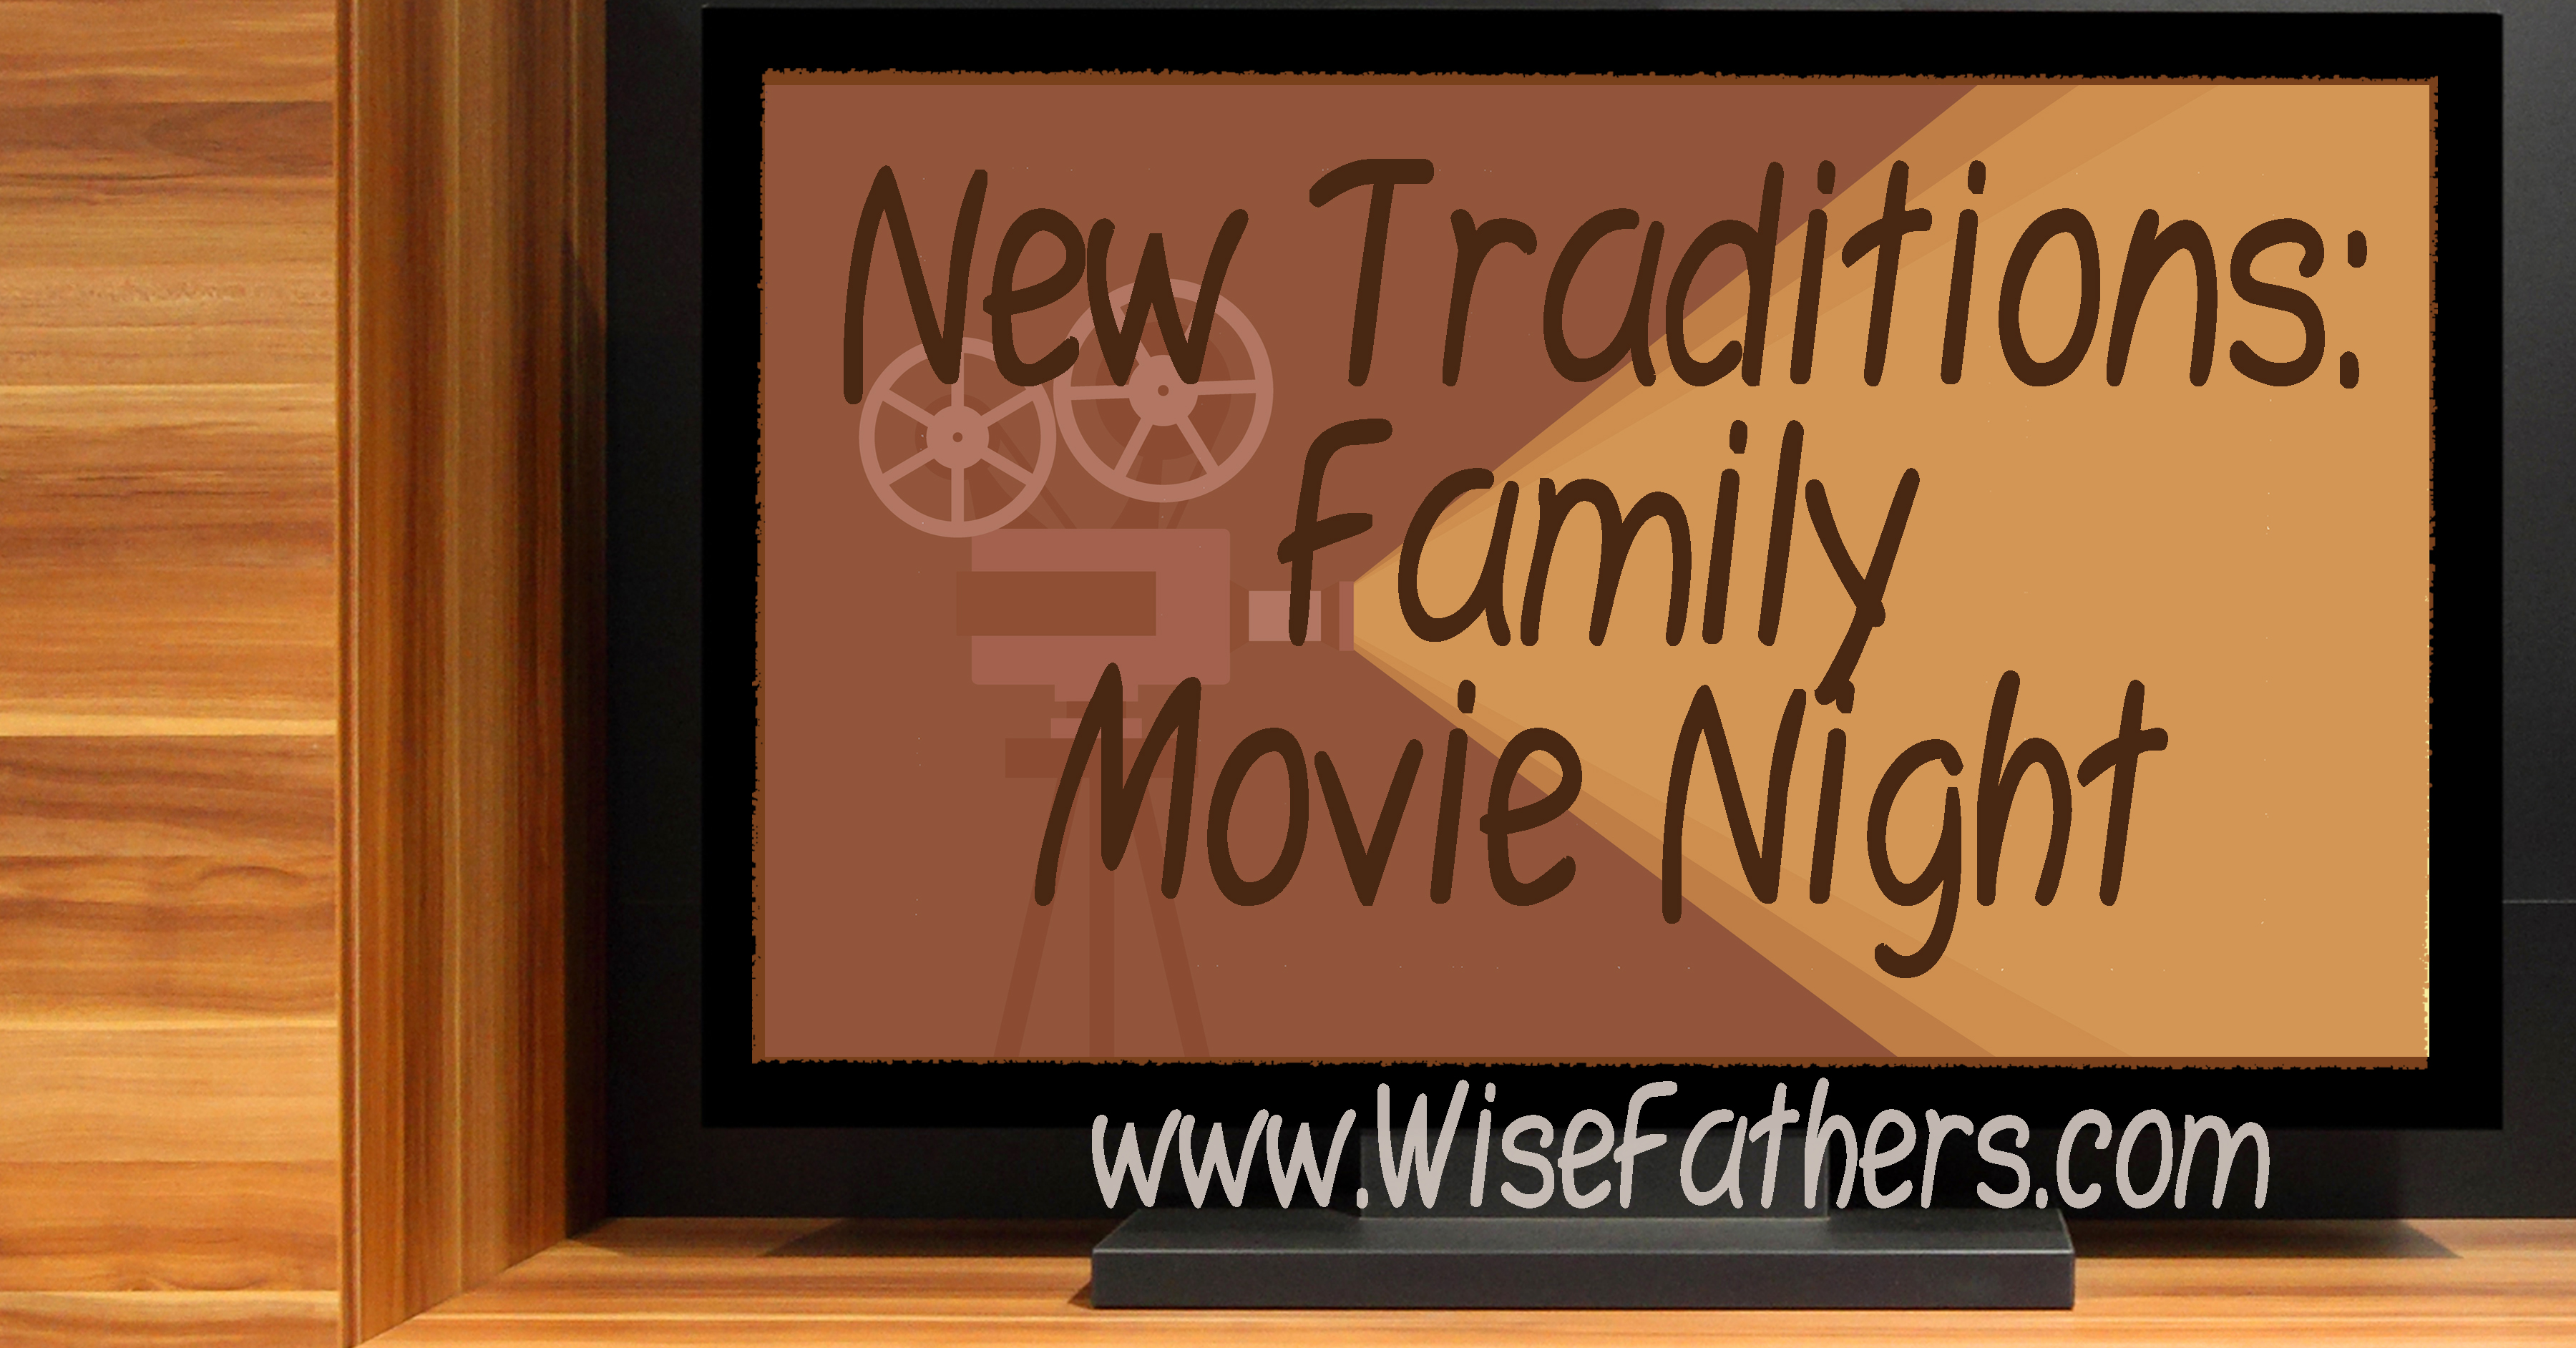 New Traditions: Family Movie Night